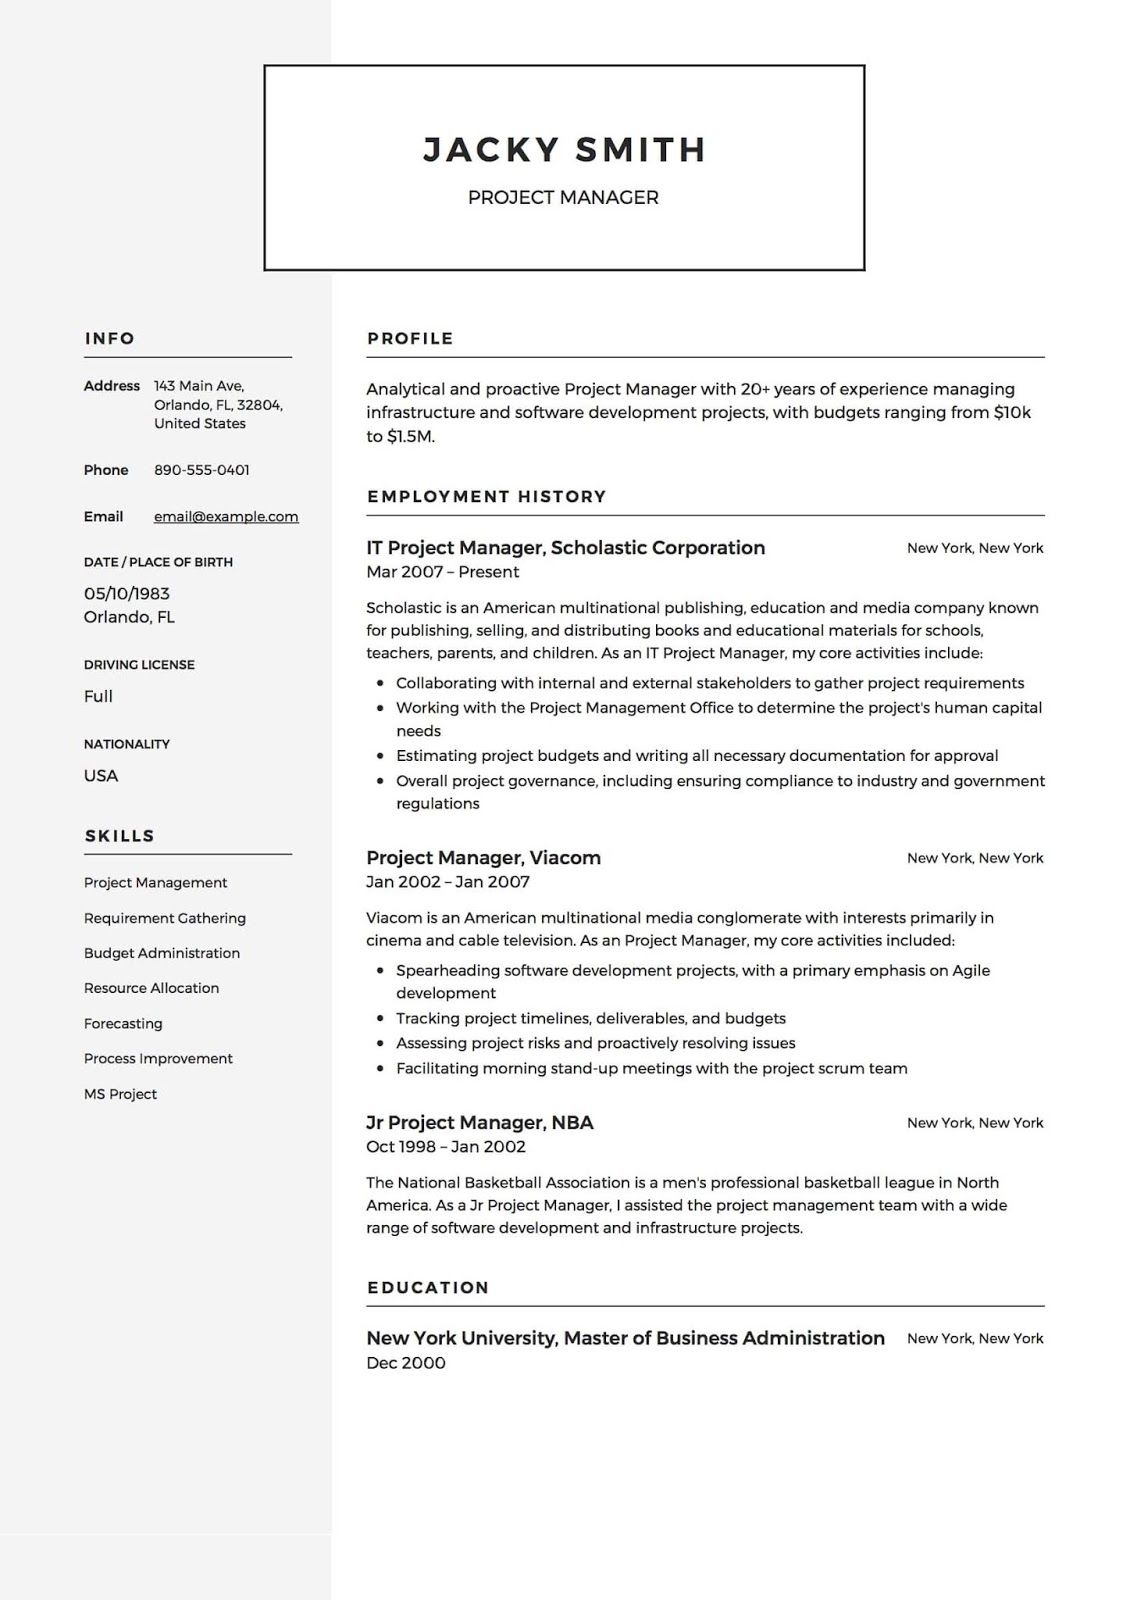 project manager resume templates basic examples template word writing for job application Resume Manager Resume Template Word